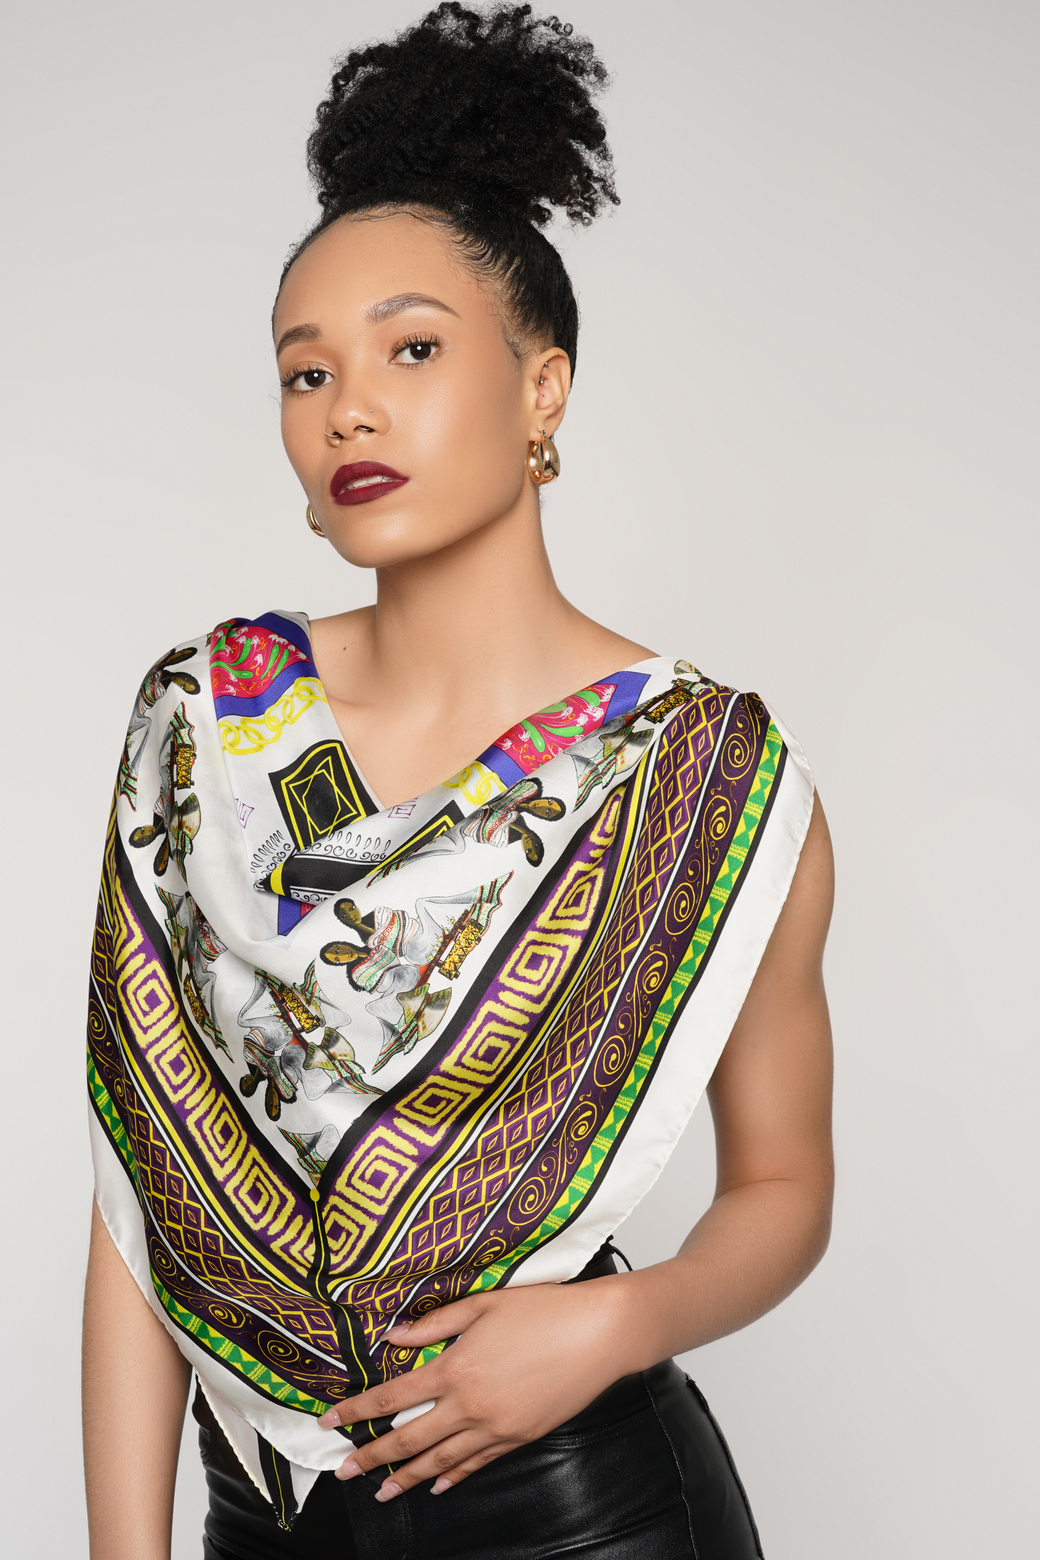 Silks Of Sheba Announces Physical Stores in South Africa and New York For Its African-inspired Scarf Designs 1